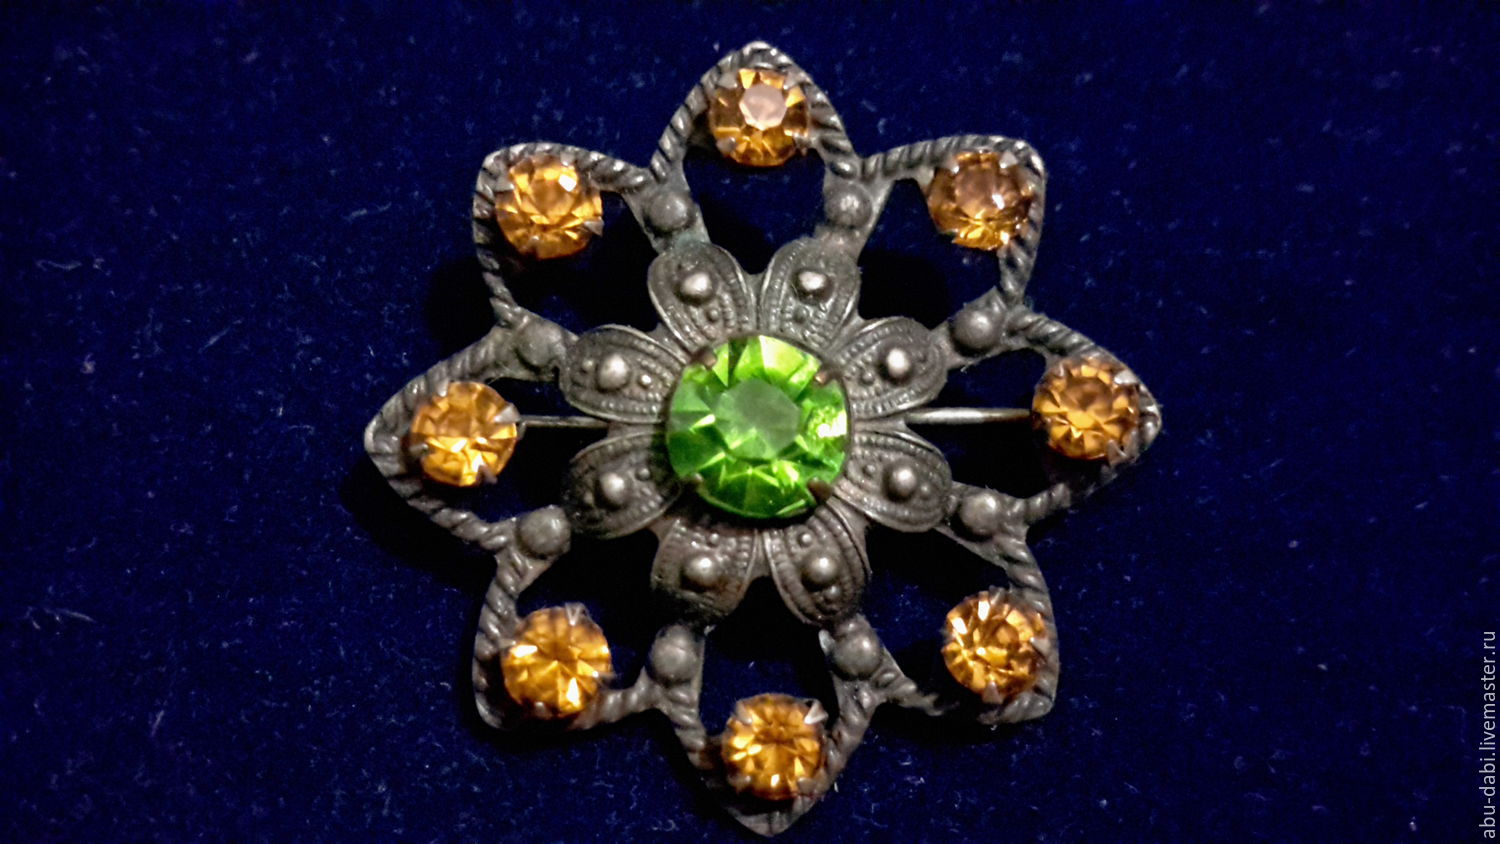 Vintage ,antique brooch with silver plated: insert - peridot, Golden Topaz (stone of the USSR ), no amalgam - glowing by themselves.